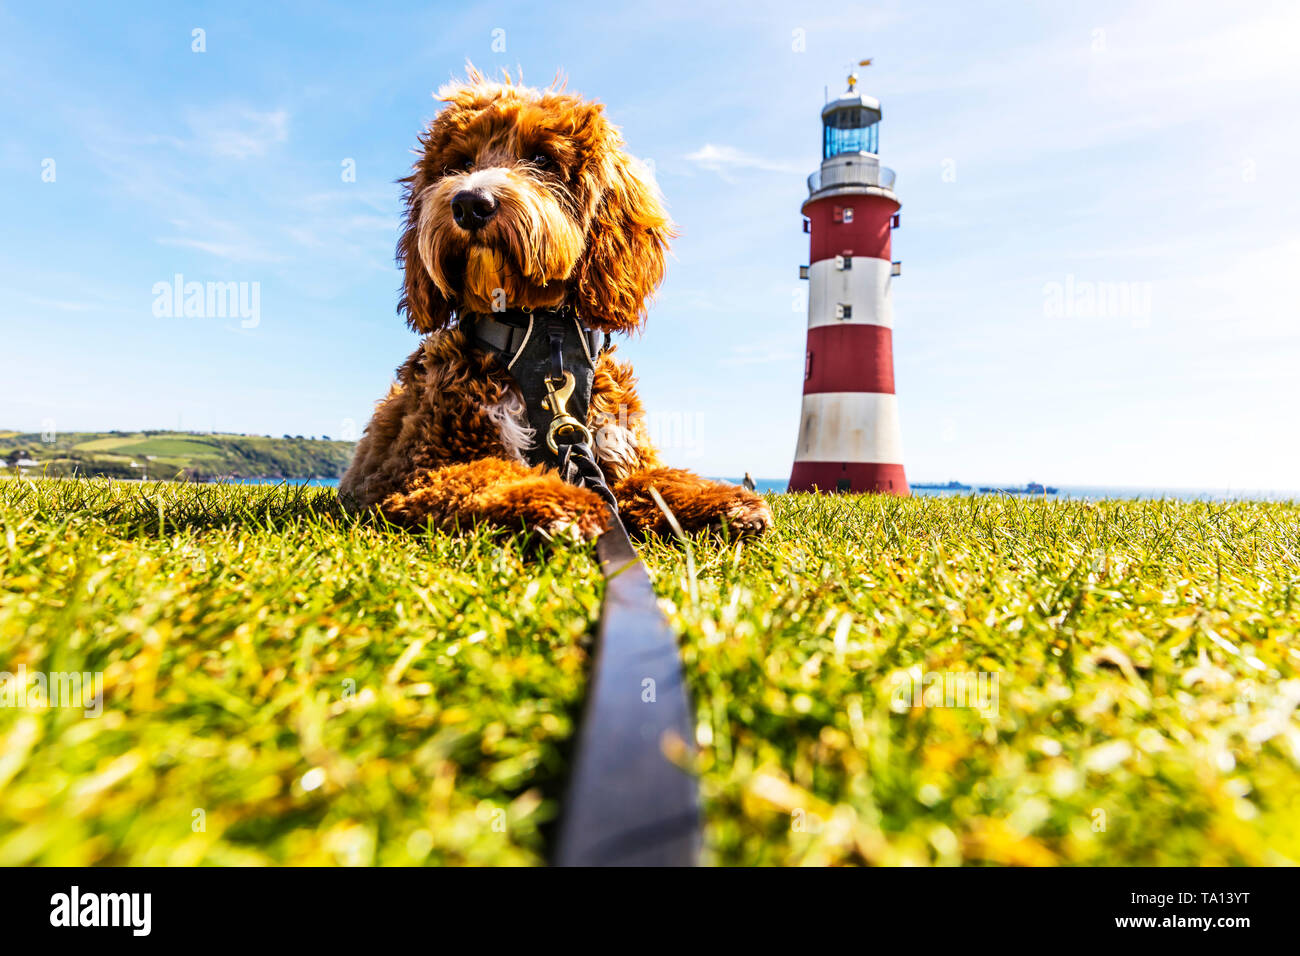 smeaton's tower lighthouse plymouth hoe, Red Cockapoo next to Plymouth lighthouse, smeaton's tower lighthouse, plymouth hoe, smeaton's tower, - Stock Image